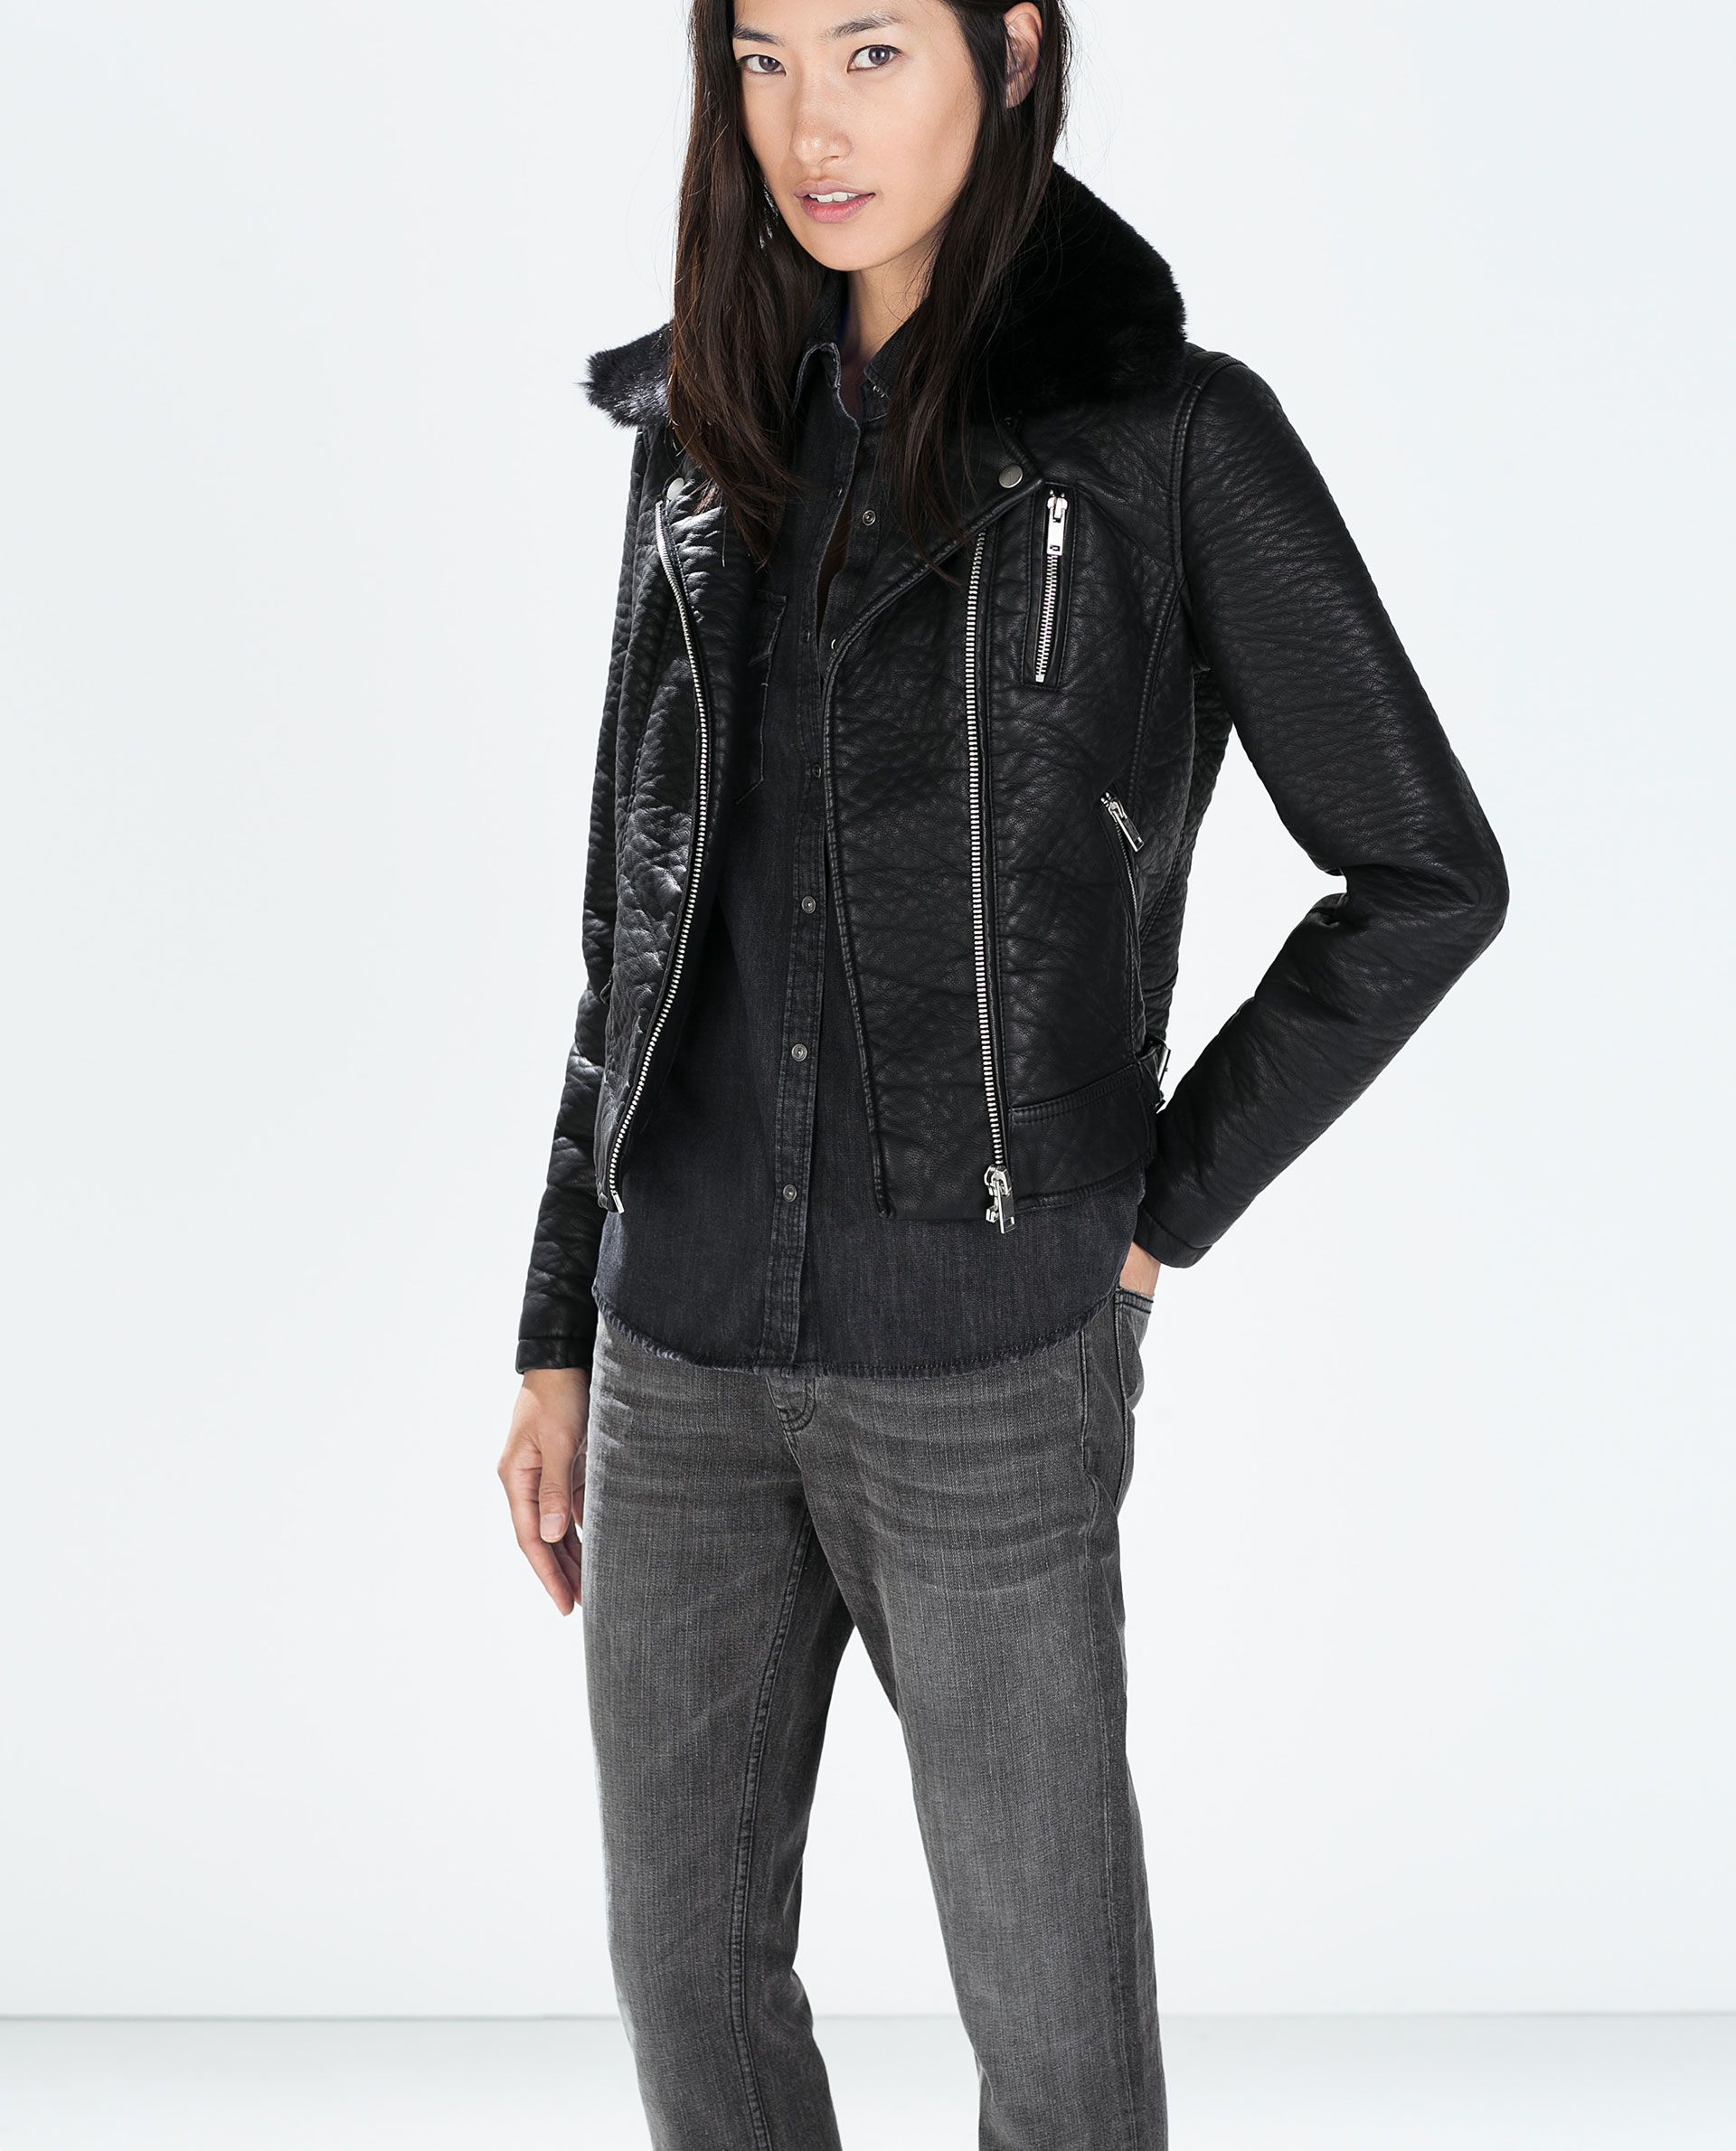 FAUX LEATHER JACKET WITH DETACHABLE FUR COLLAR . I need it